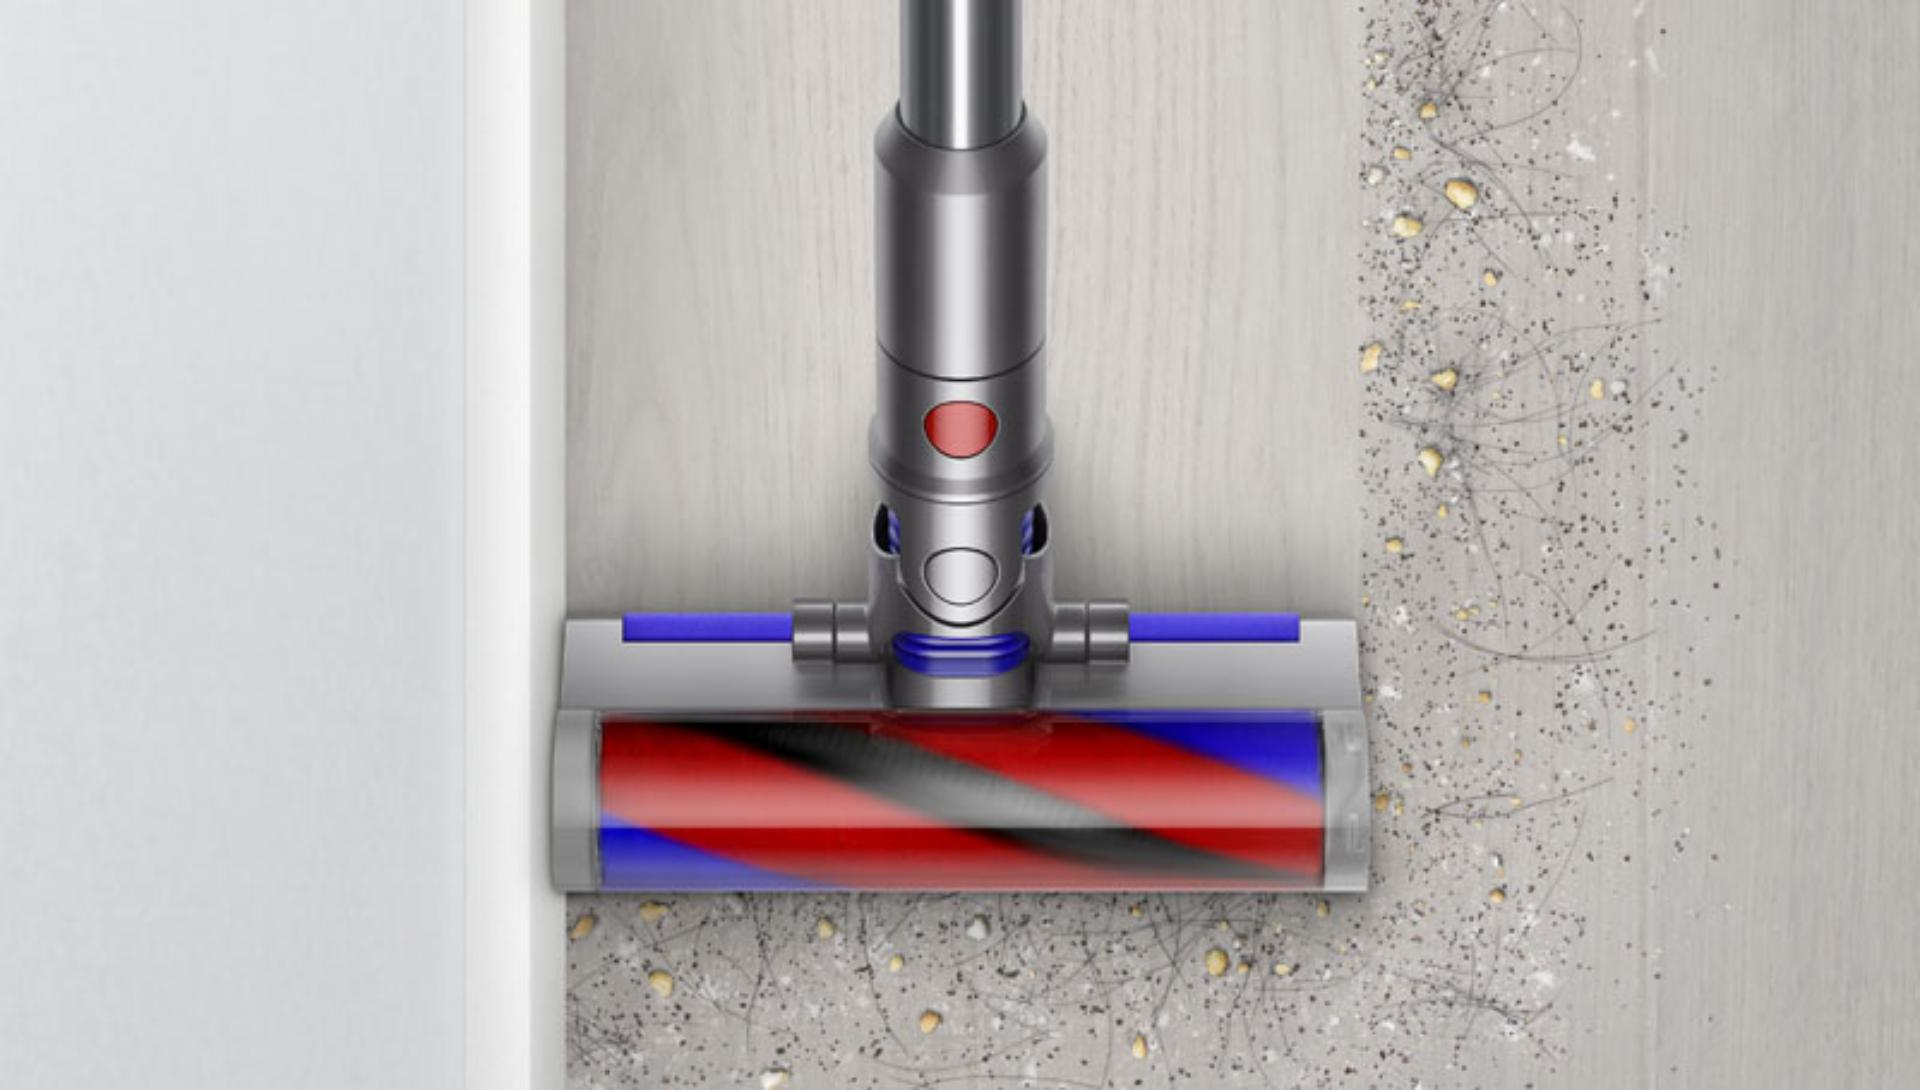 Dyson Micro 1.5kg cleaner head cleaning next to a wall.